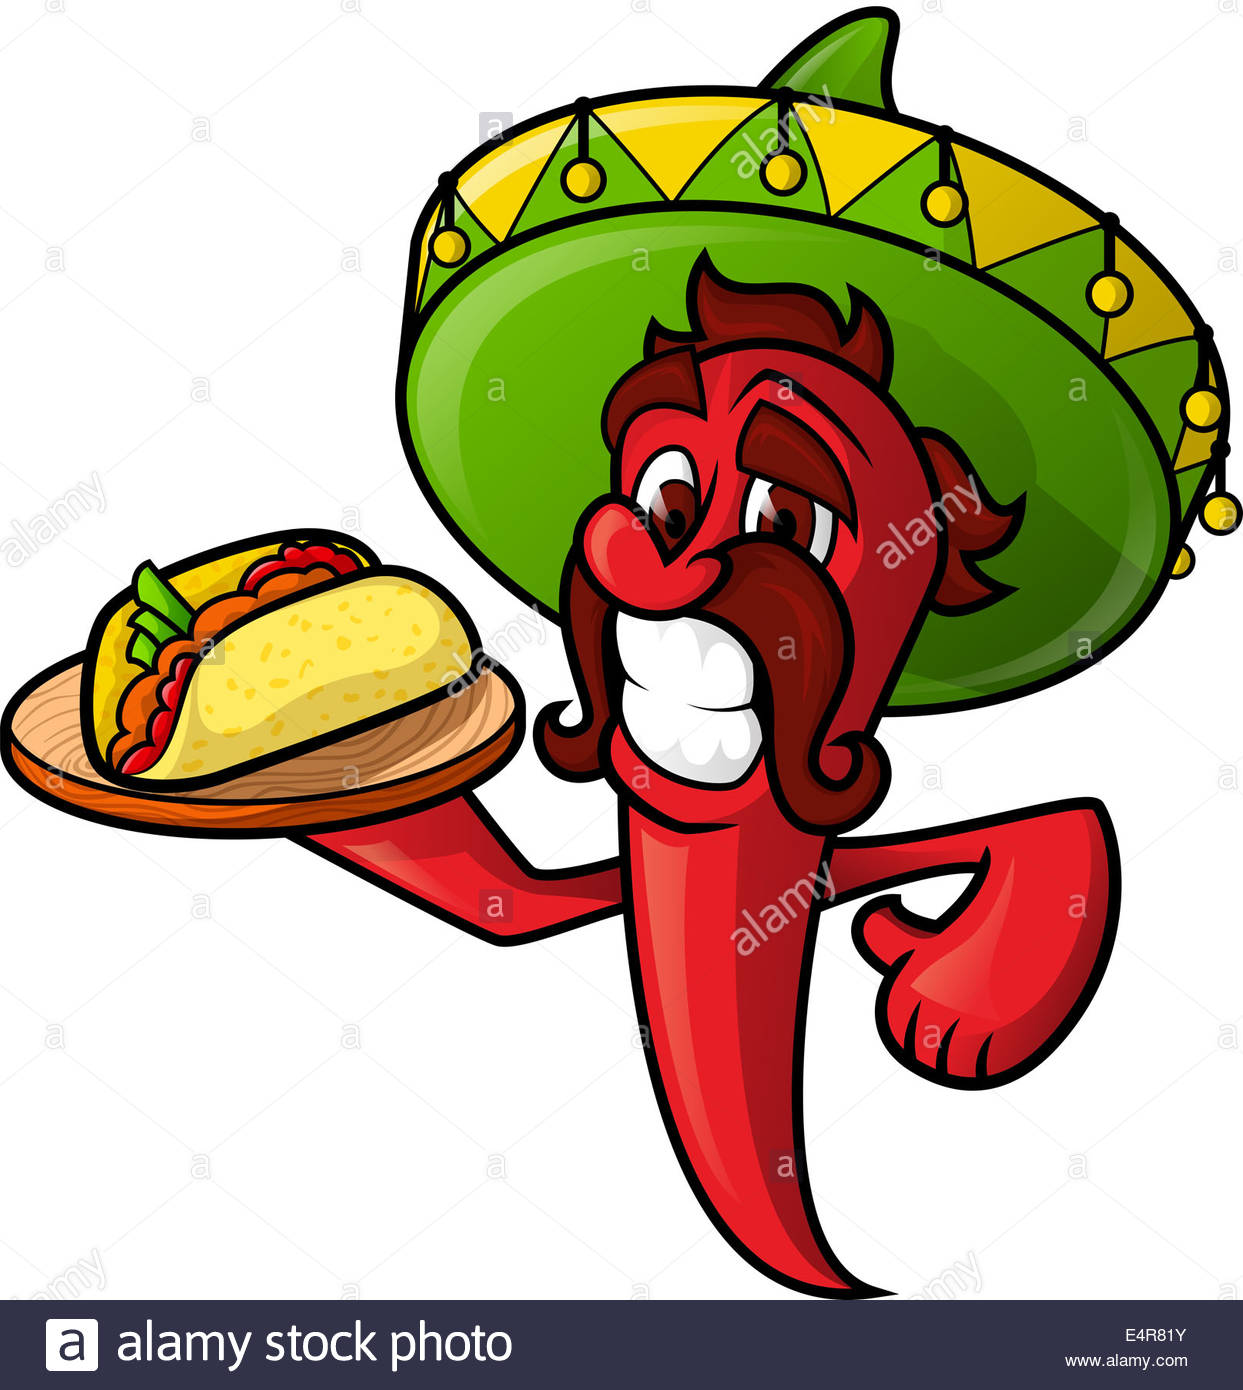 Mexican food cliparts jpg transparent Collection of Mexican food clipart | Free download best ... jpg transparent